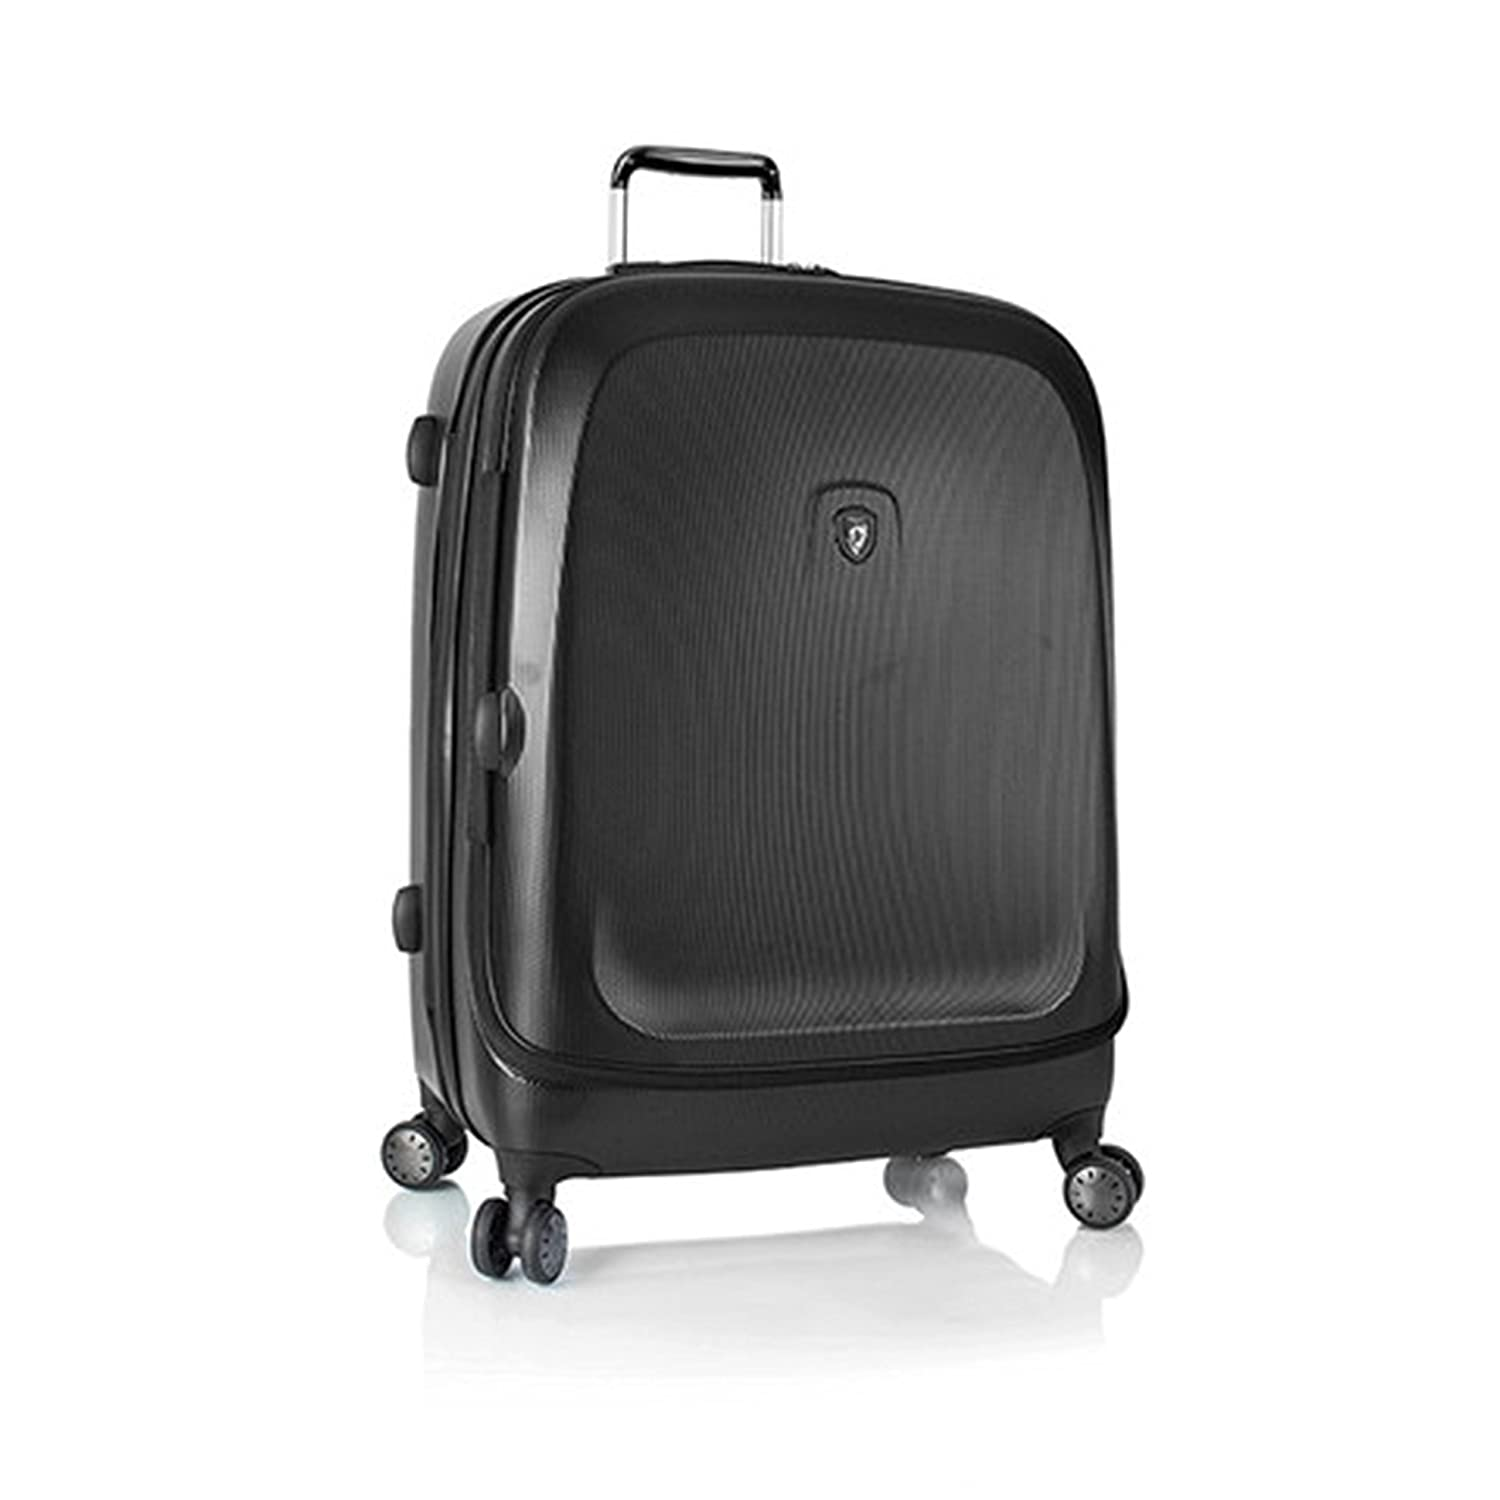 Heys - Crown Smart Gateway Schwarz Trolley mit 4 Rollen Gross